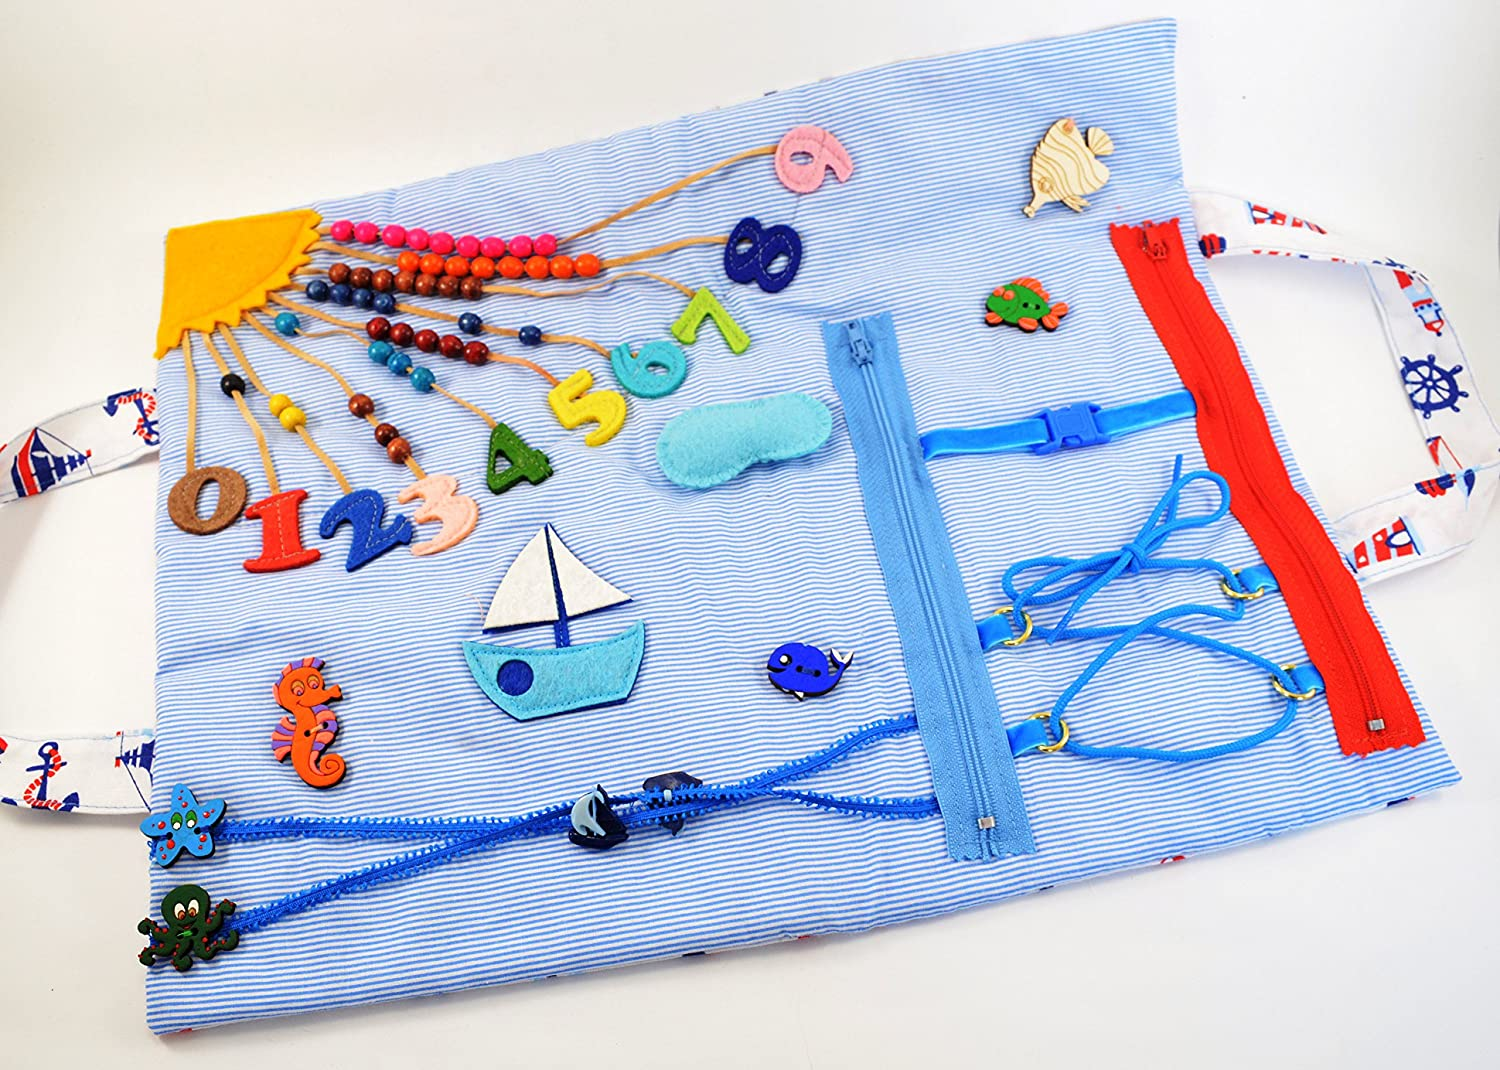 Fidget blanket for toddler Quiet travel toy Activity blanket Sensory blanket Busy blanket for 1 year old Dementia activity Autism therapy